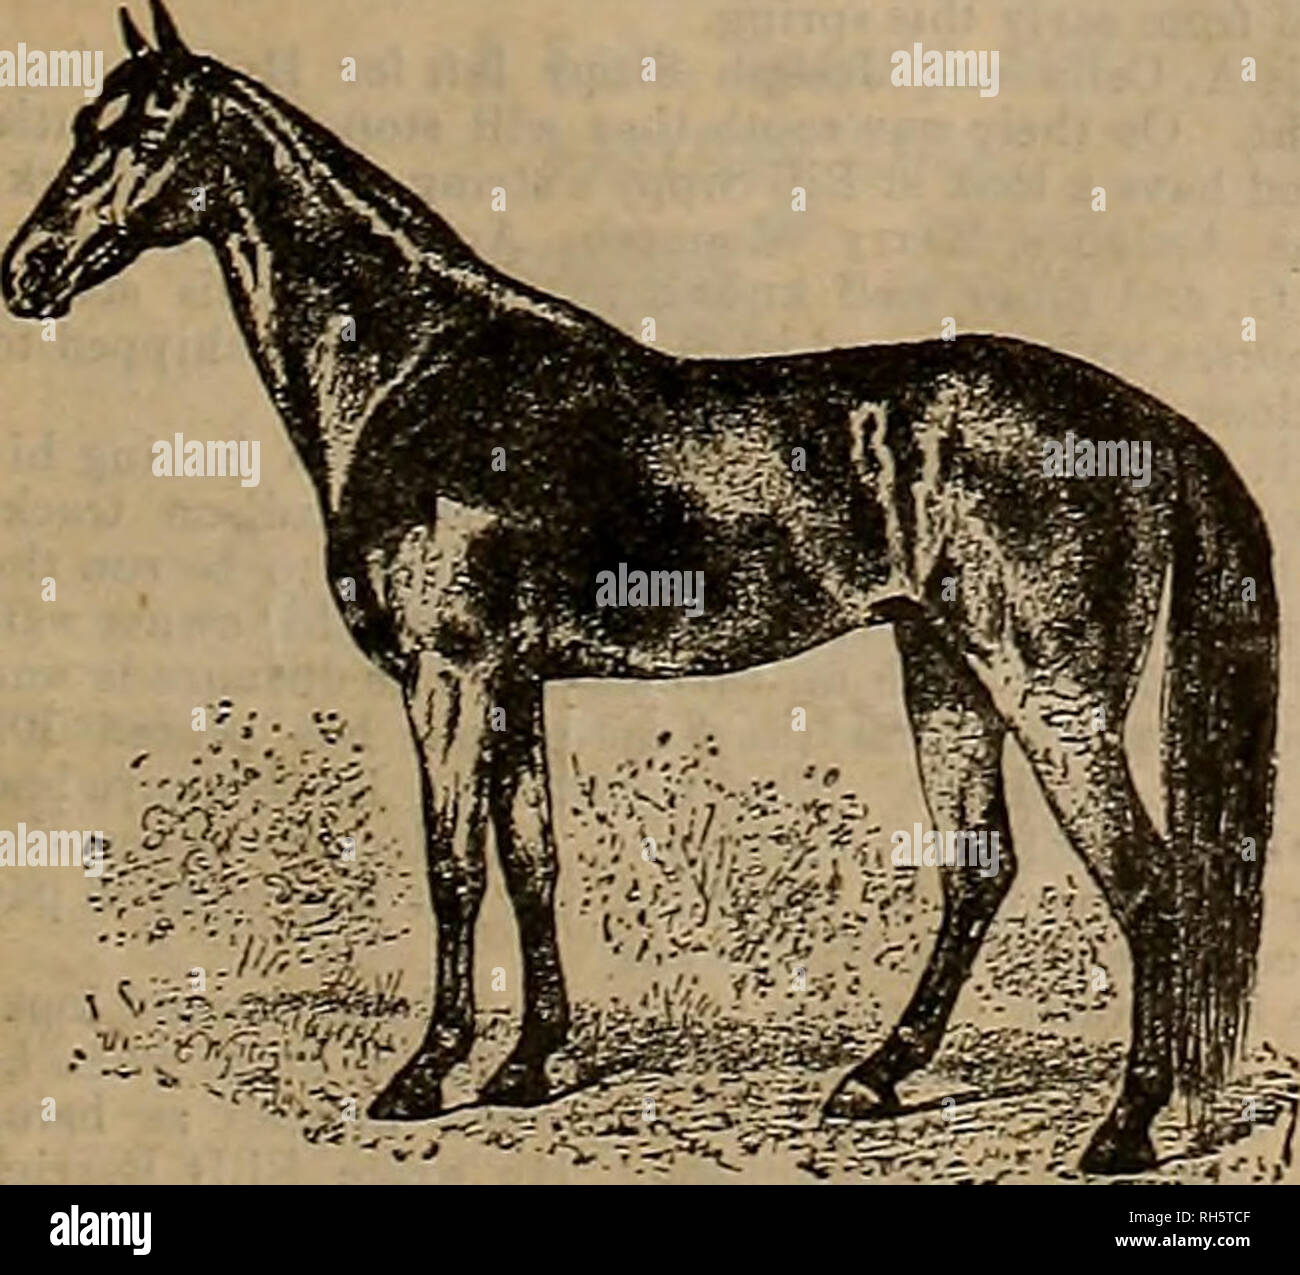 ". Breeder and sportsman. Horses. *arch;5, 18931 ffitp? ^veettev cmv gpfttt&mcm. 151 THE LETTER WHE4.T DBA.L California Newapp3r Man Who Played Seasational Part in the Greatest ""Wheat Combine in the World. Tha great, wheat combine, through, which the prica of that product has gone up from 65 cents to a point above the dollar mark and became the subject of g03sip in the two hemis- pheres, owes much of its success to J. T. Flynn, a well-known P-iciii; Coast newspaper man who was at one time an edi- torial writer on the Biekdsr a^d Sportsman. A year ago last June he went to St. Louis as  - Stock Image"